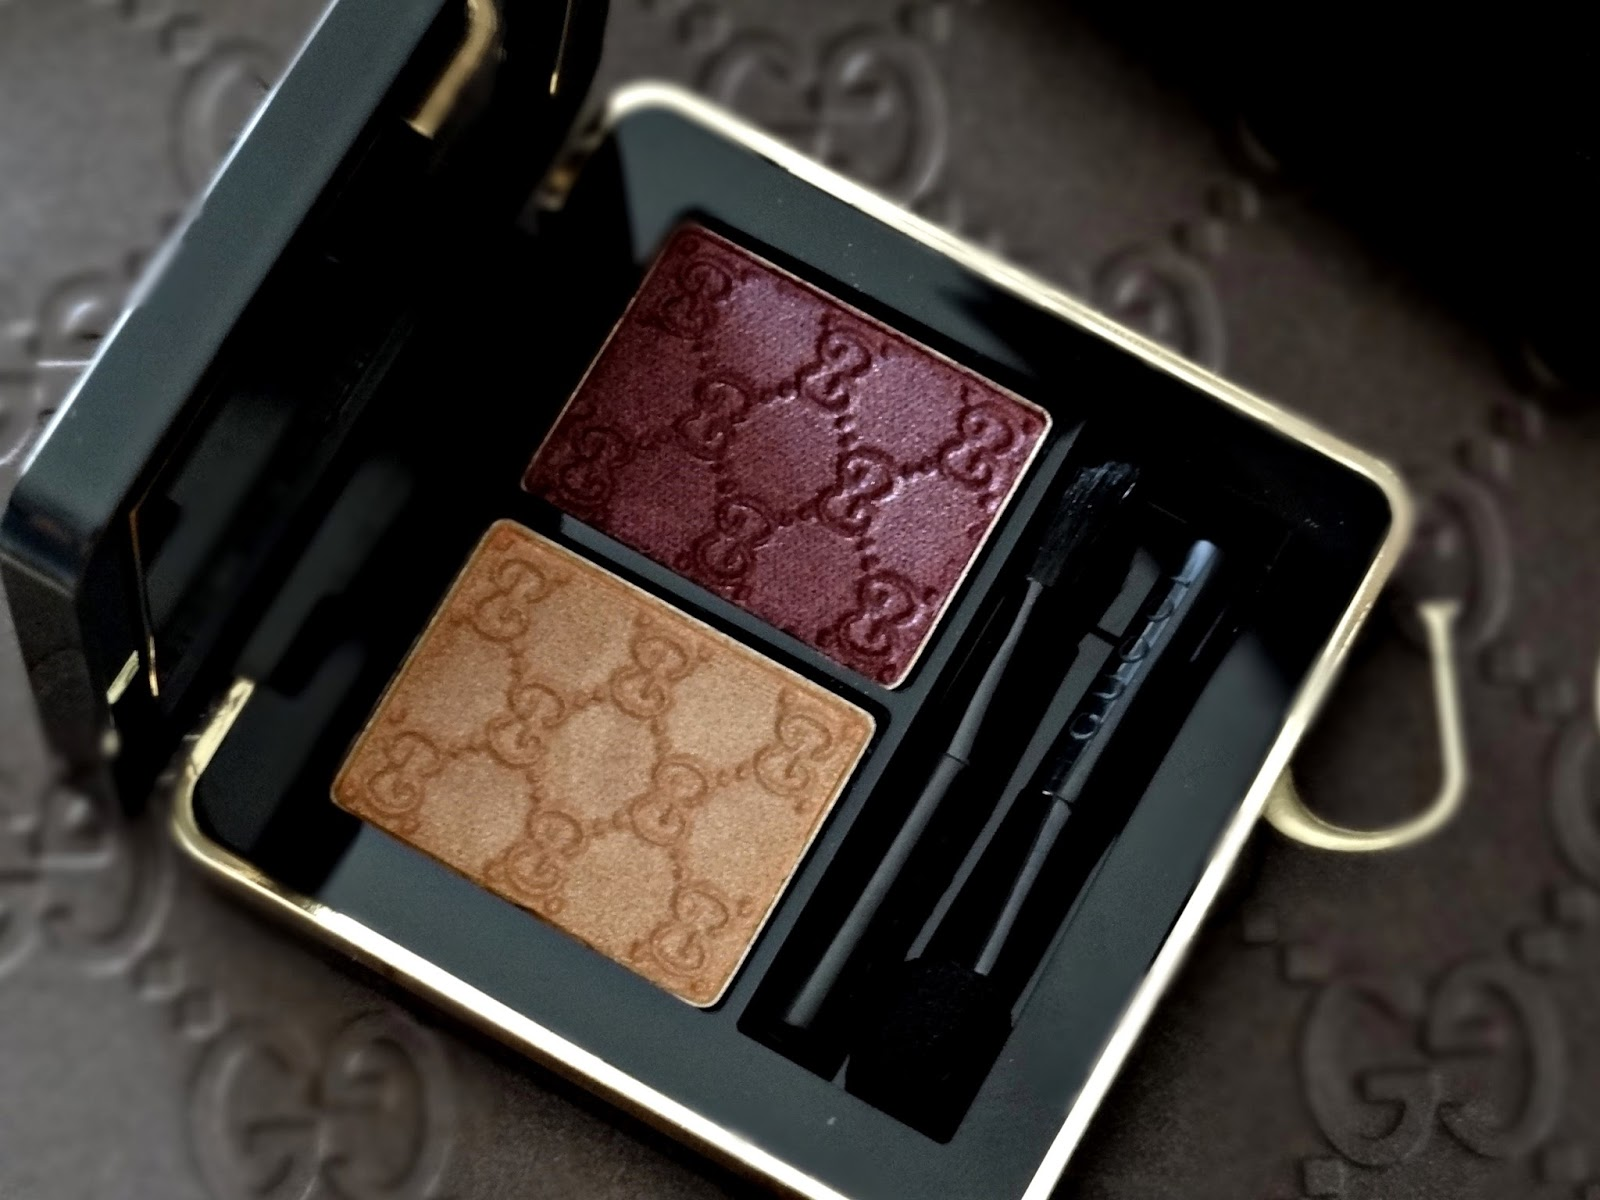 Gucci Beauty Magnetic Color Eye Shadow Duo in Azalea Review, Photos & Swatches